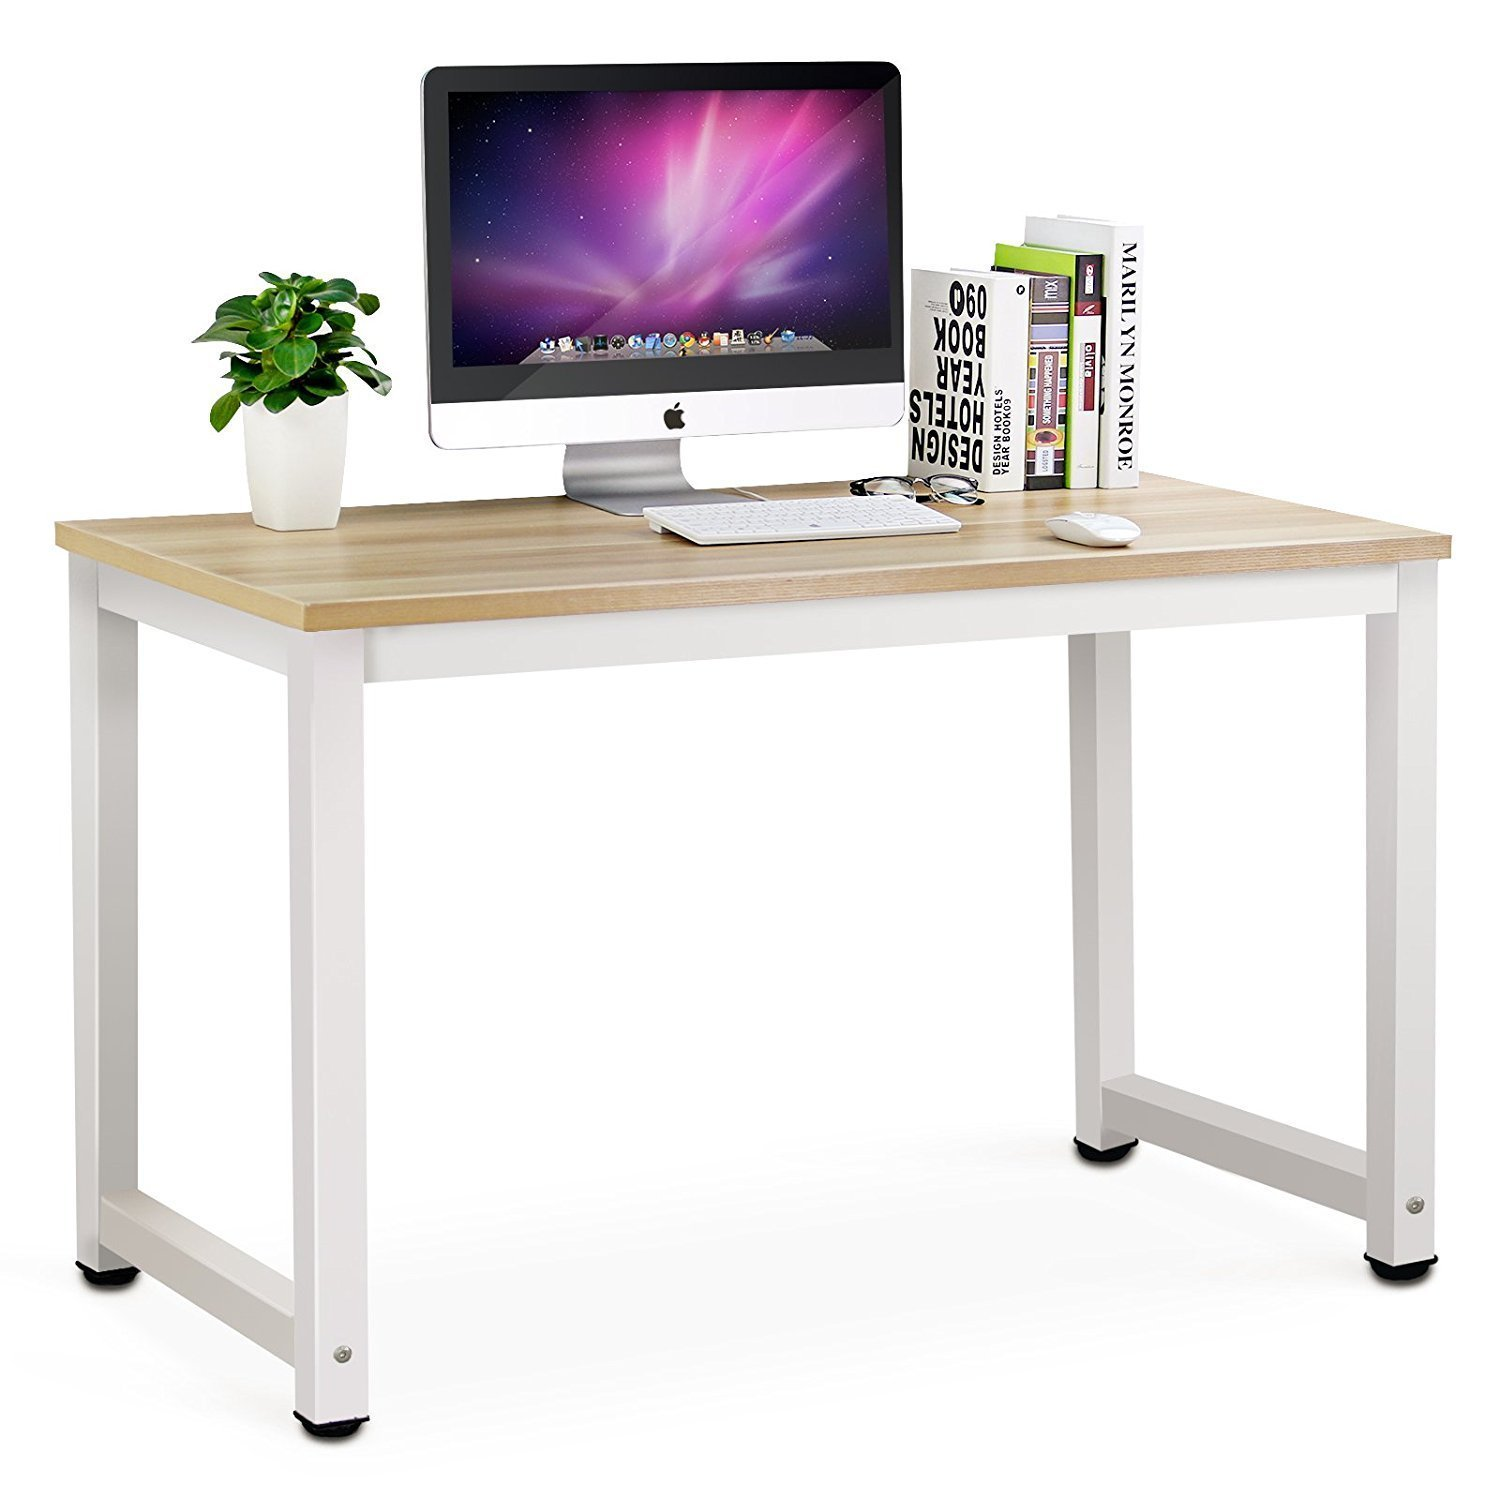 Amazon com   Tribesigns Computer Desk  47  Modern Simple Office Desk  Computer Table Study Writing Desk for Home Office  Light Walnut   Office  Products. Amazon com   Tribesigns Computer Desk  47  Modern Simple Office